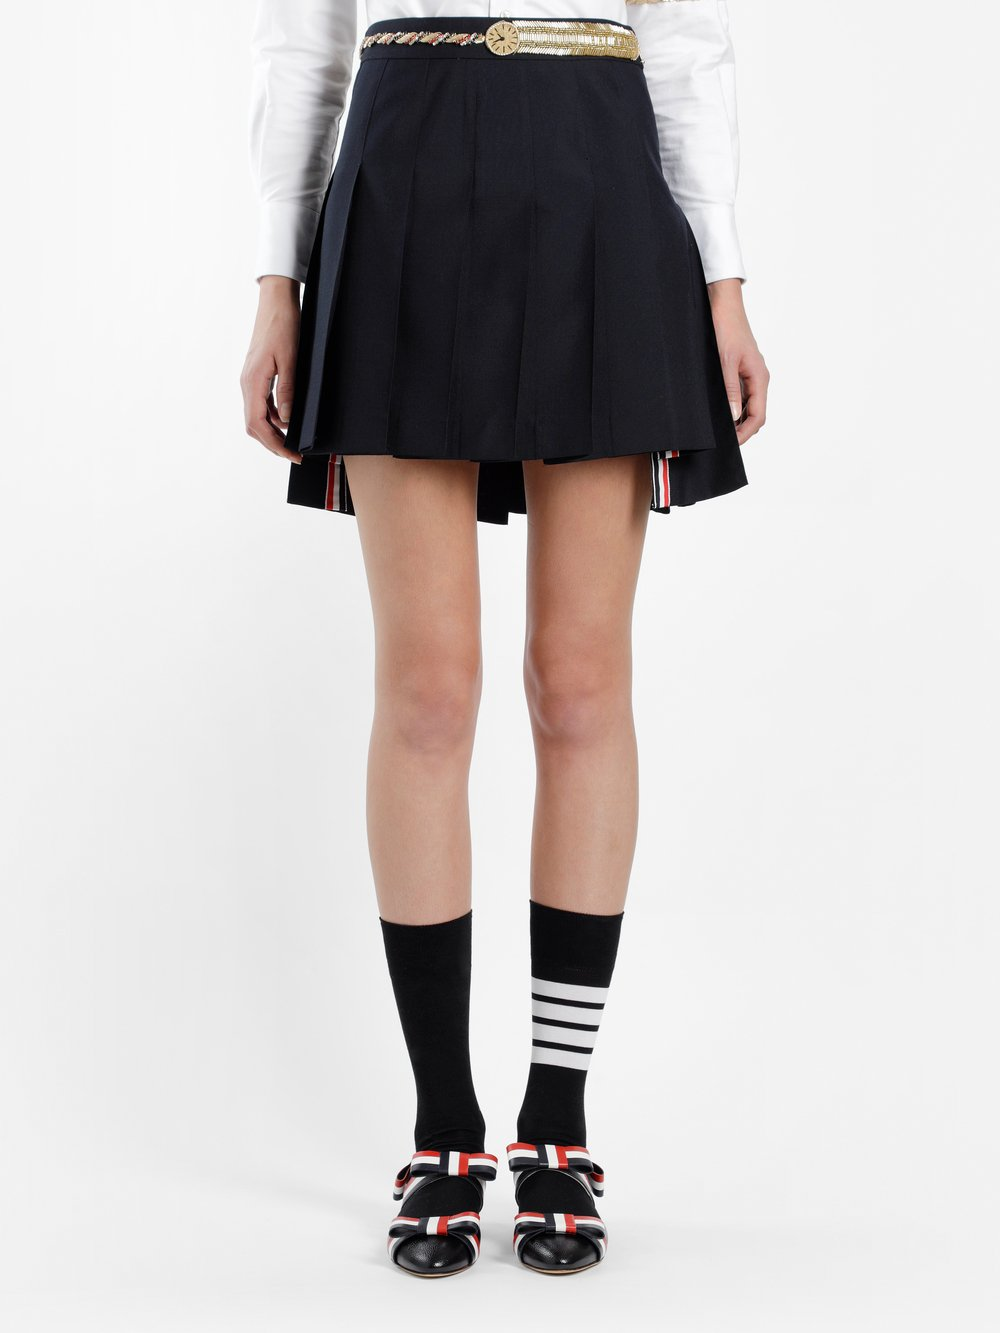 THOM BROWNE WOMEN'S BLUE MINI PLEATED SKIRT WITH BELT APPLIQUE